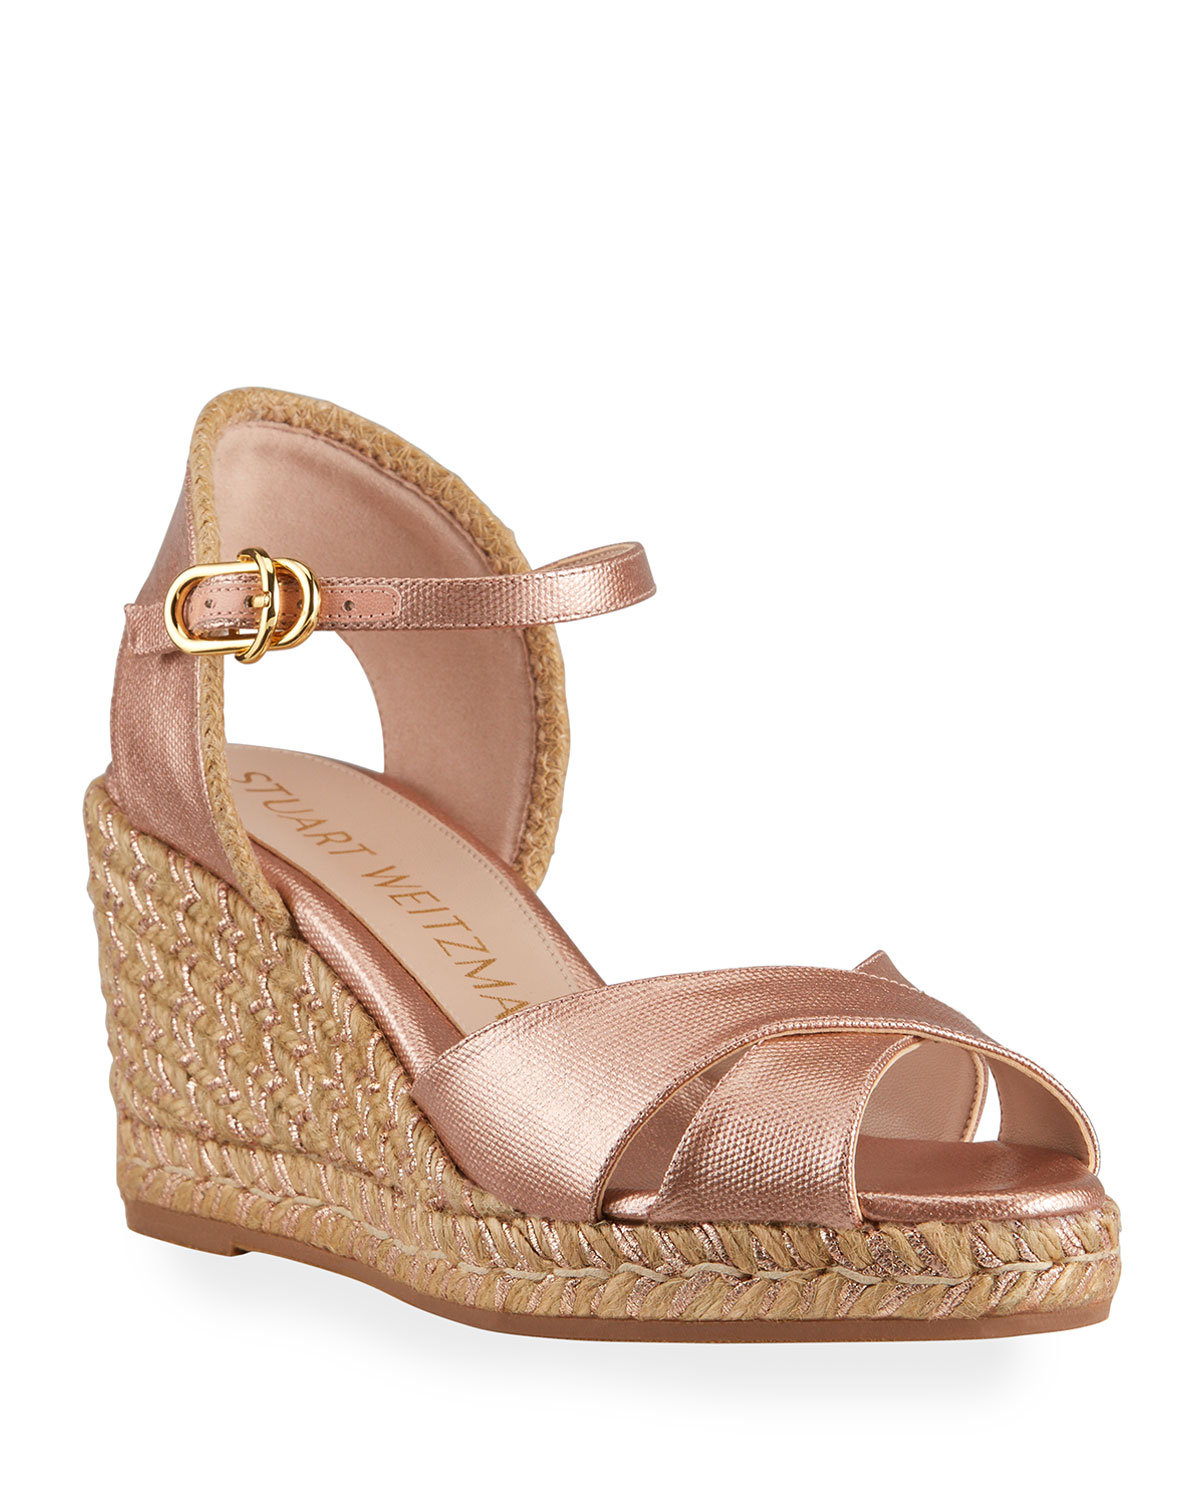 Stuart Weitzman MIRELA METALLIC CANVAS ESPADRILLE WEDGE SANDALS